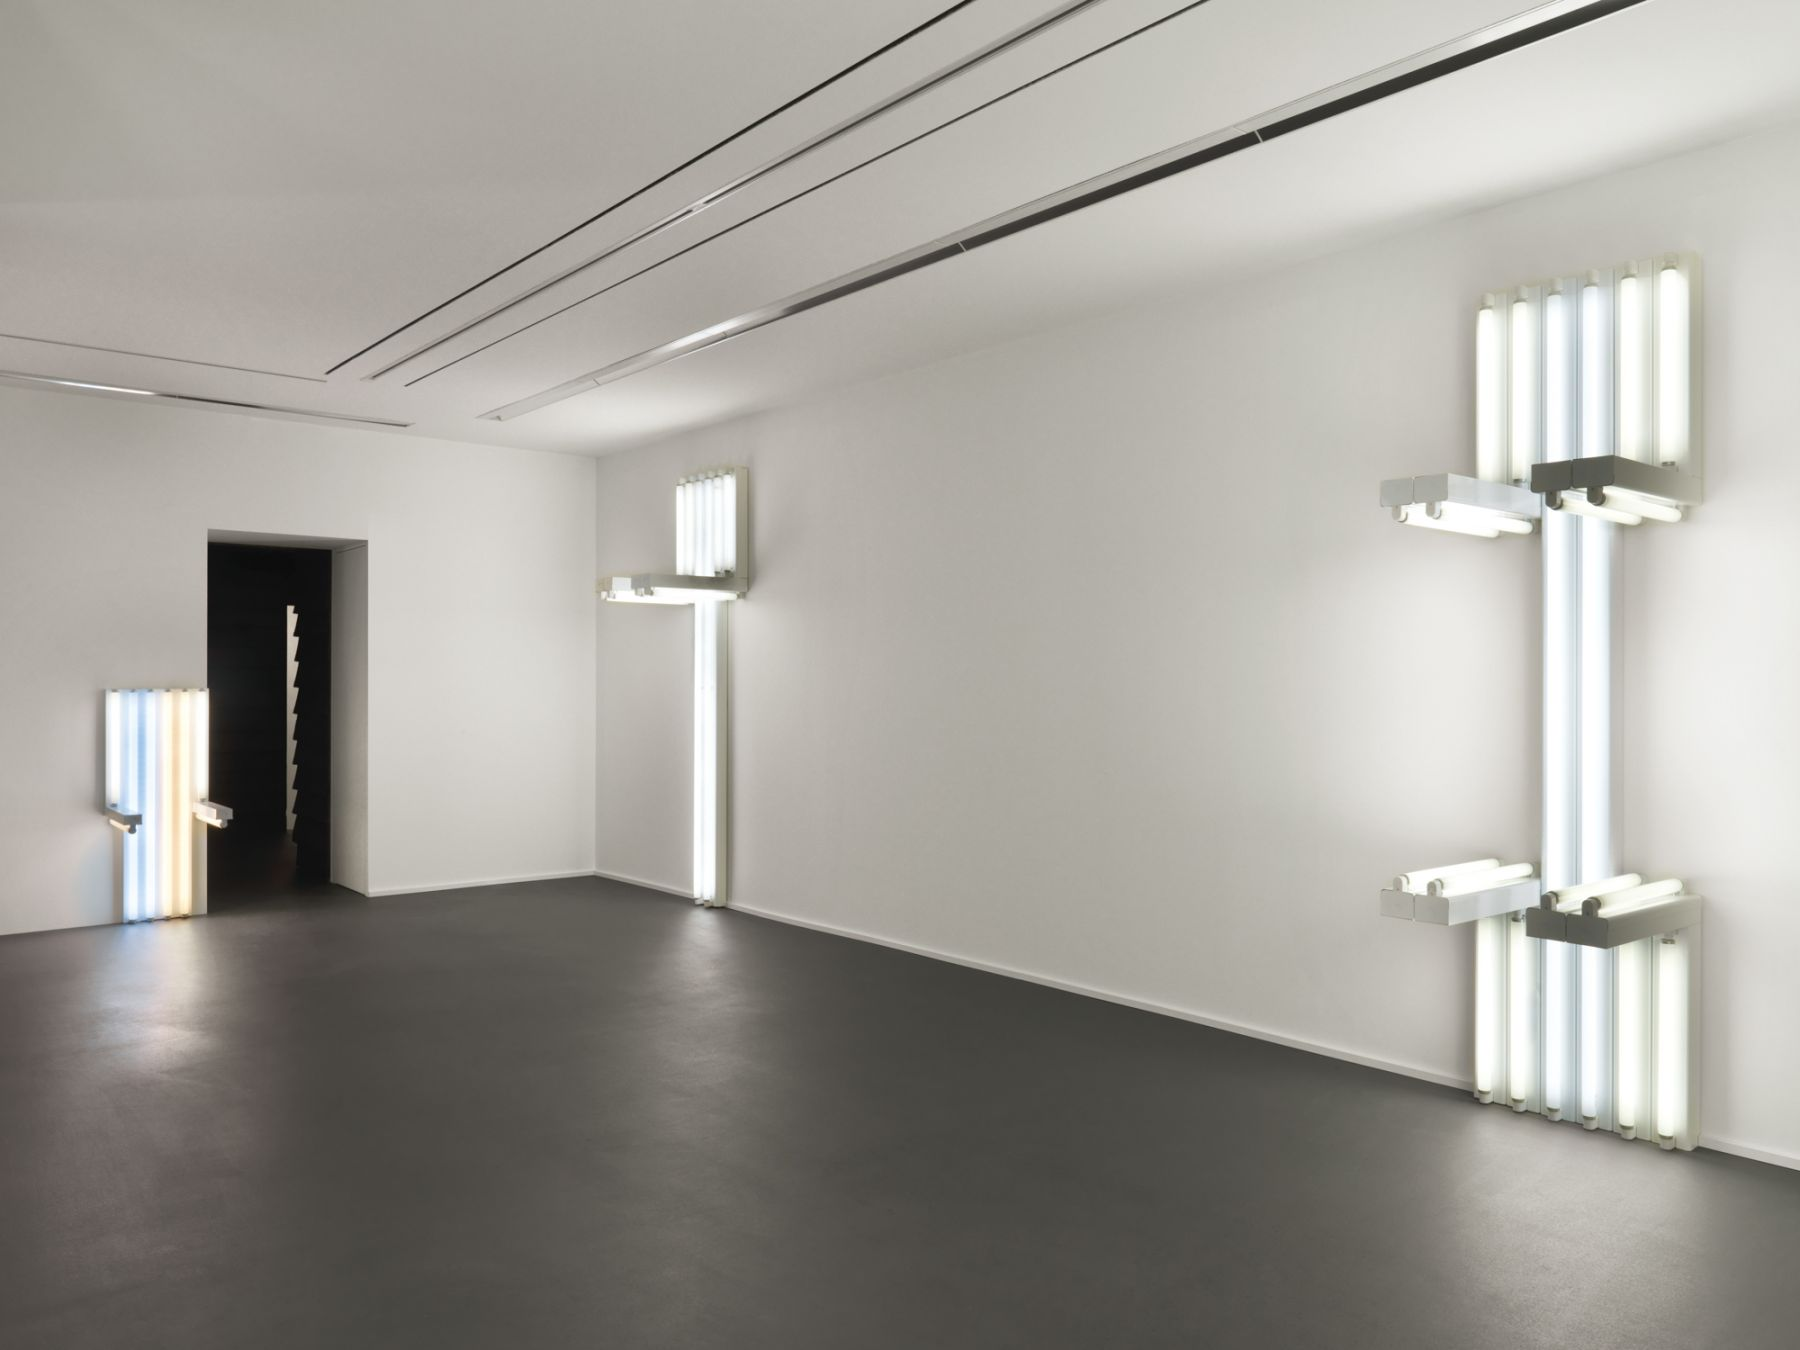 Installation view, Dan Flavin, to Lucie Rie and Hans Coper, master potters, Vito Schnabel Gallery, St. Moritz